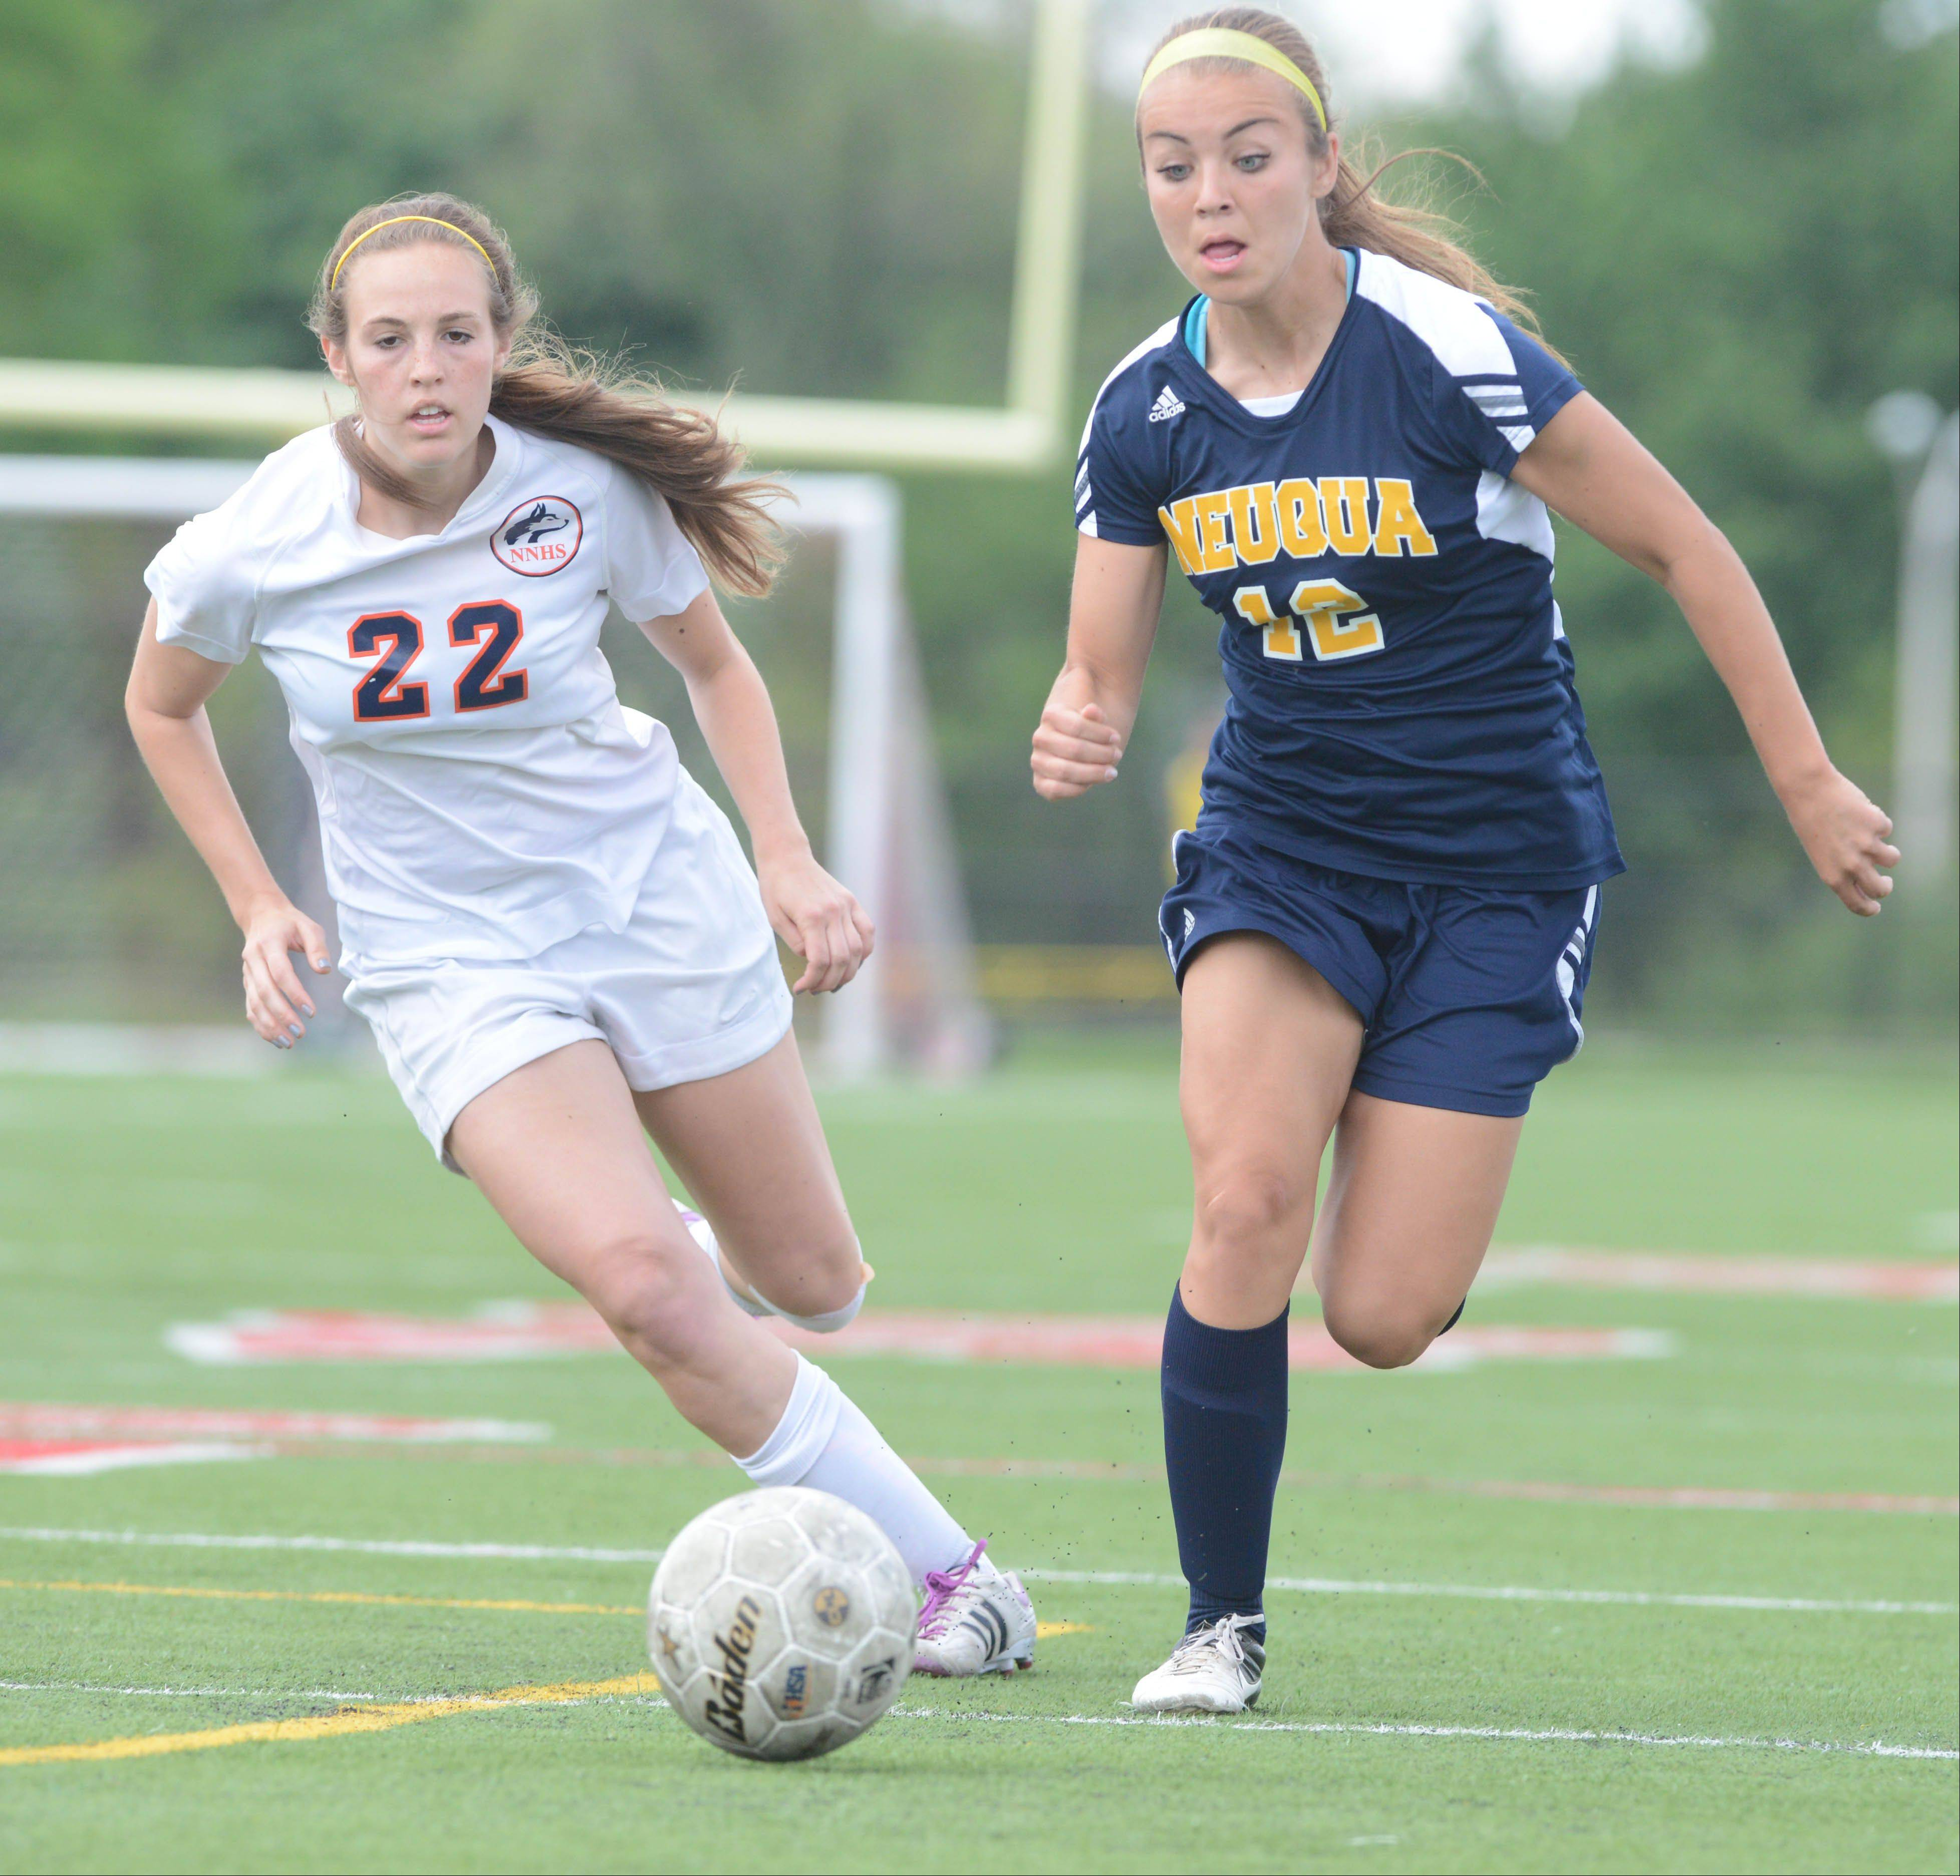 Tracy Korn of Naperville North,left, and Lauren Ciesla of Neuqua move the ball during the Class 4A Bolingbrook girls soccer semifinals Wednesday.